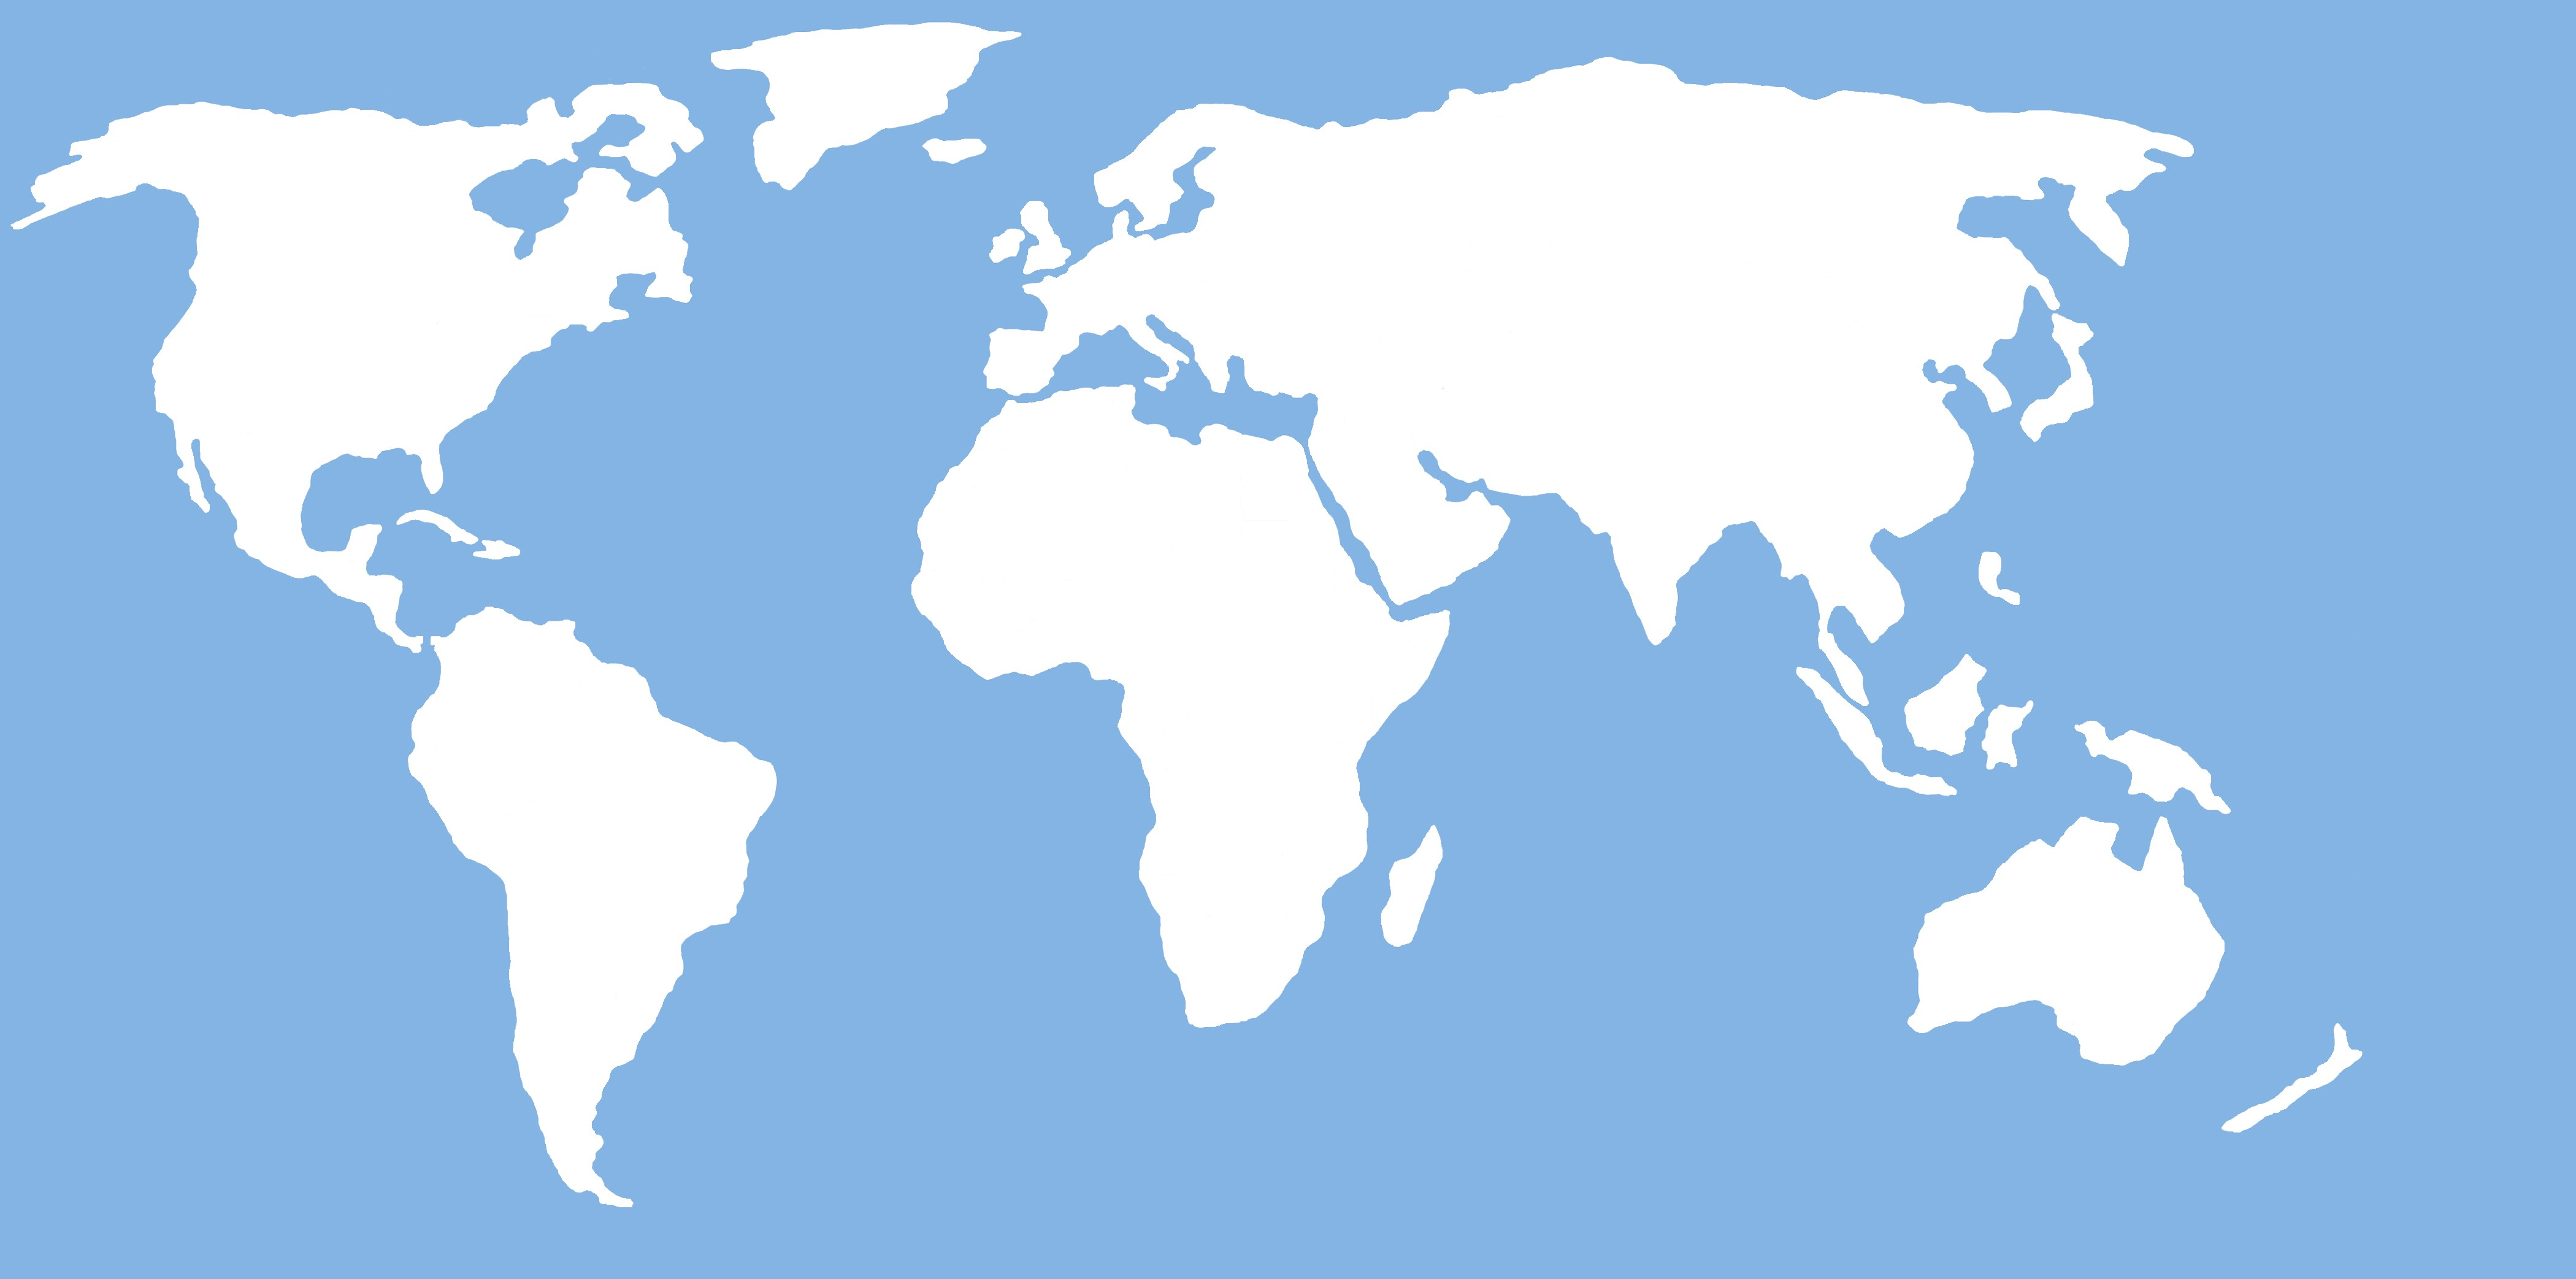 Map clipart simple. World outline easy to